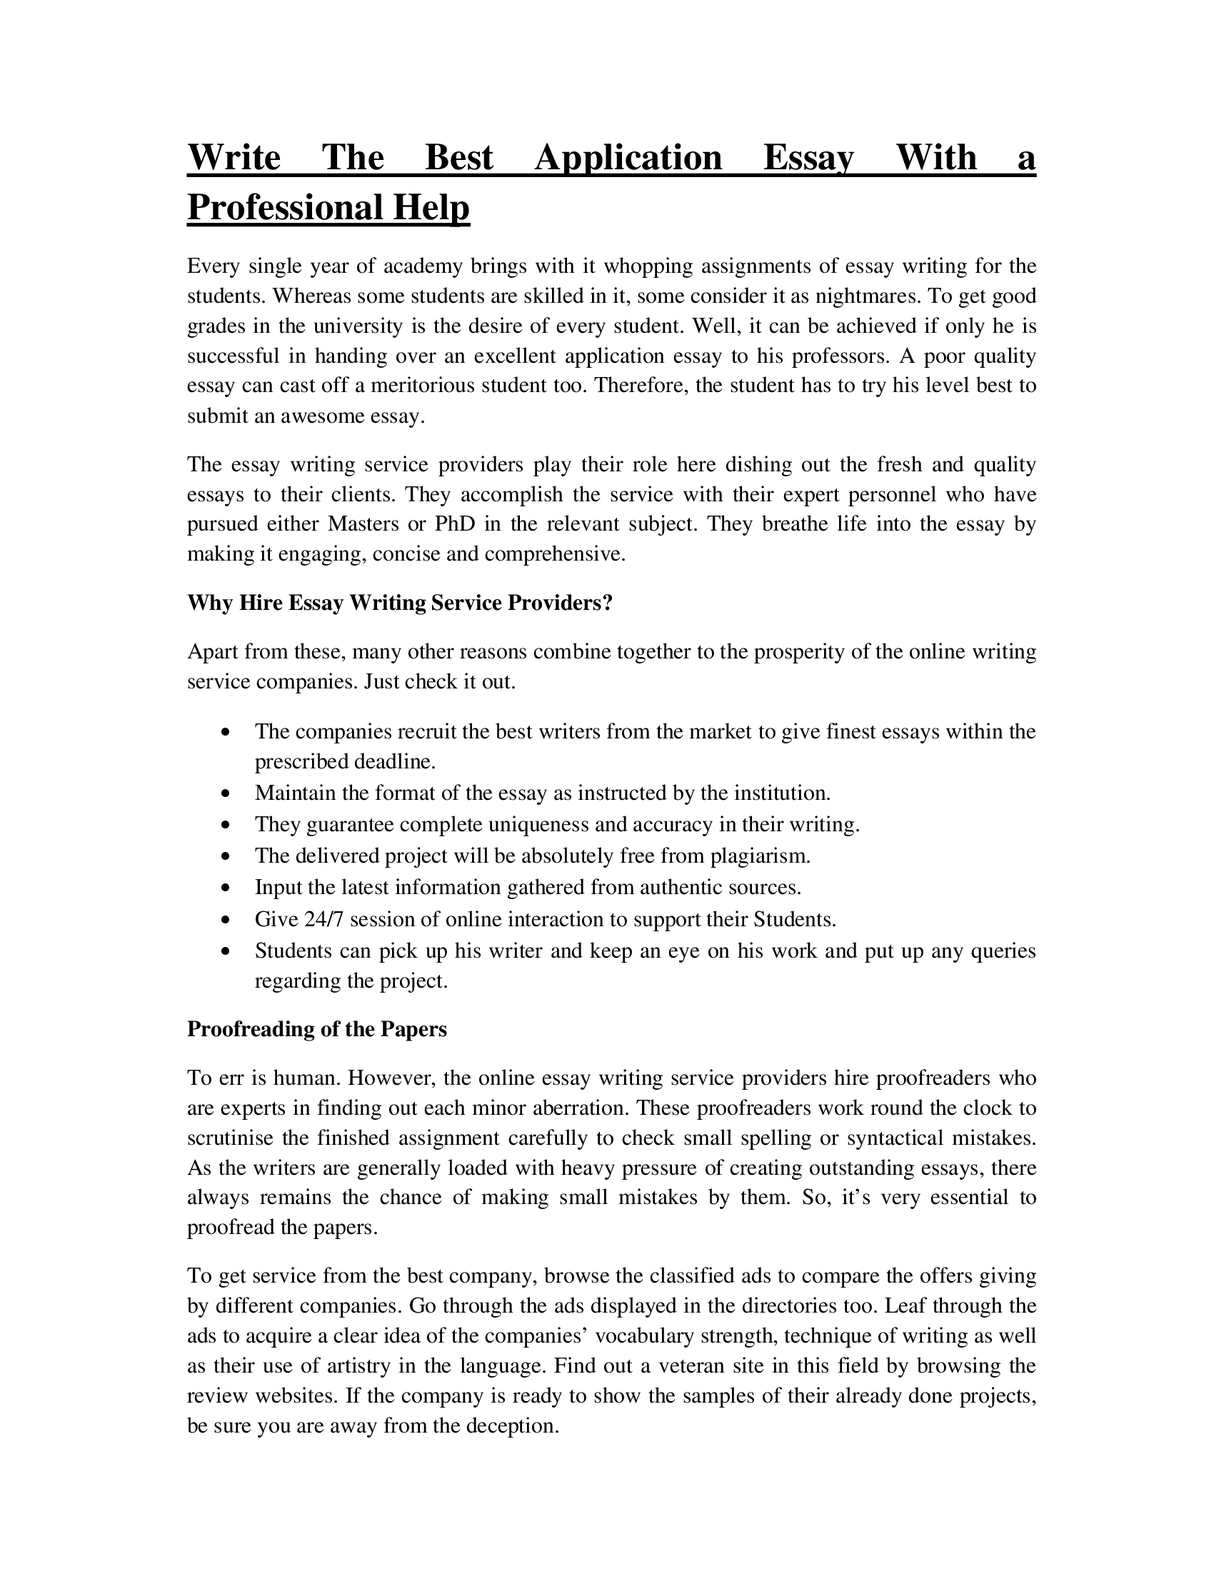 009 Quality Essay Writers Service Writing English Rap River Pro Revie Reviews Excellent Improvement In Hindi Tamil Marathi Full